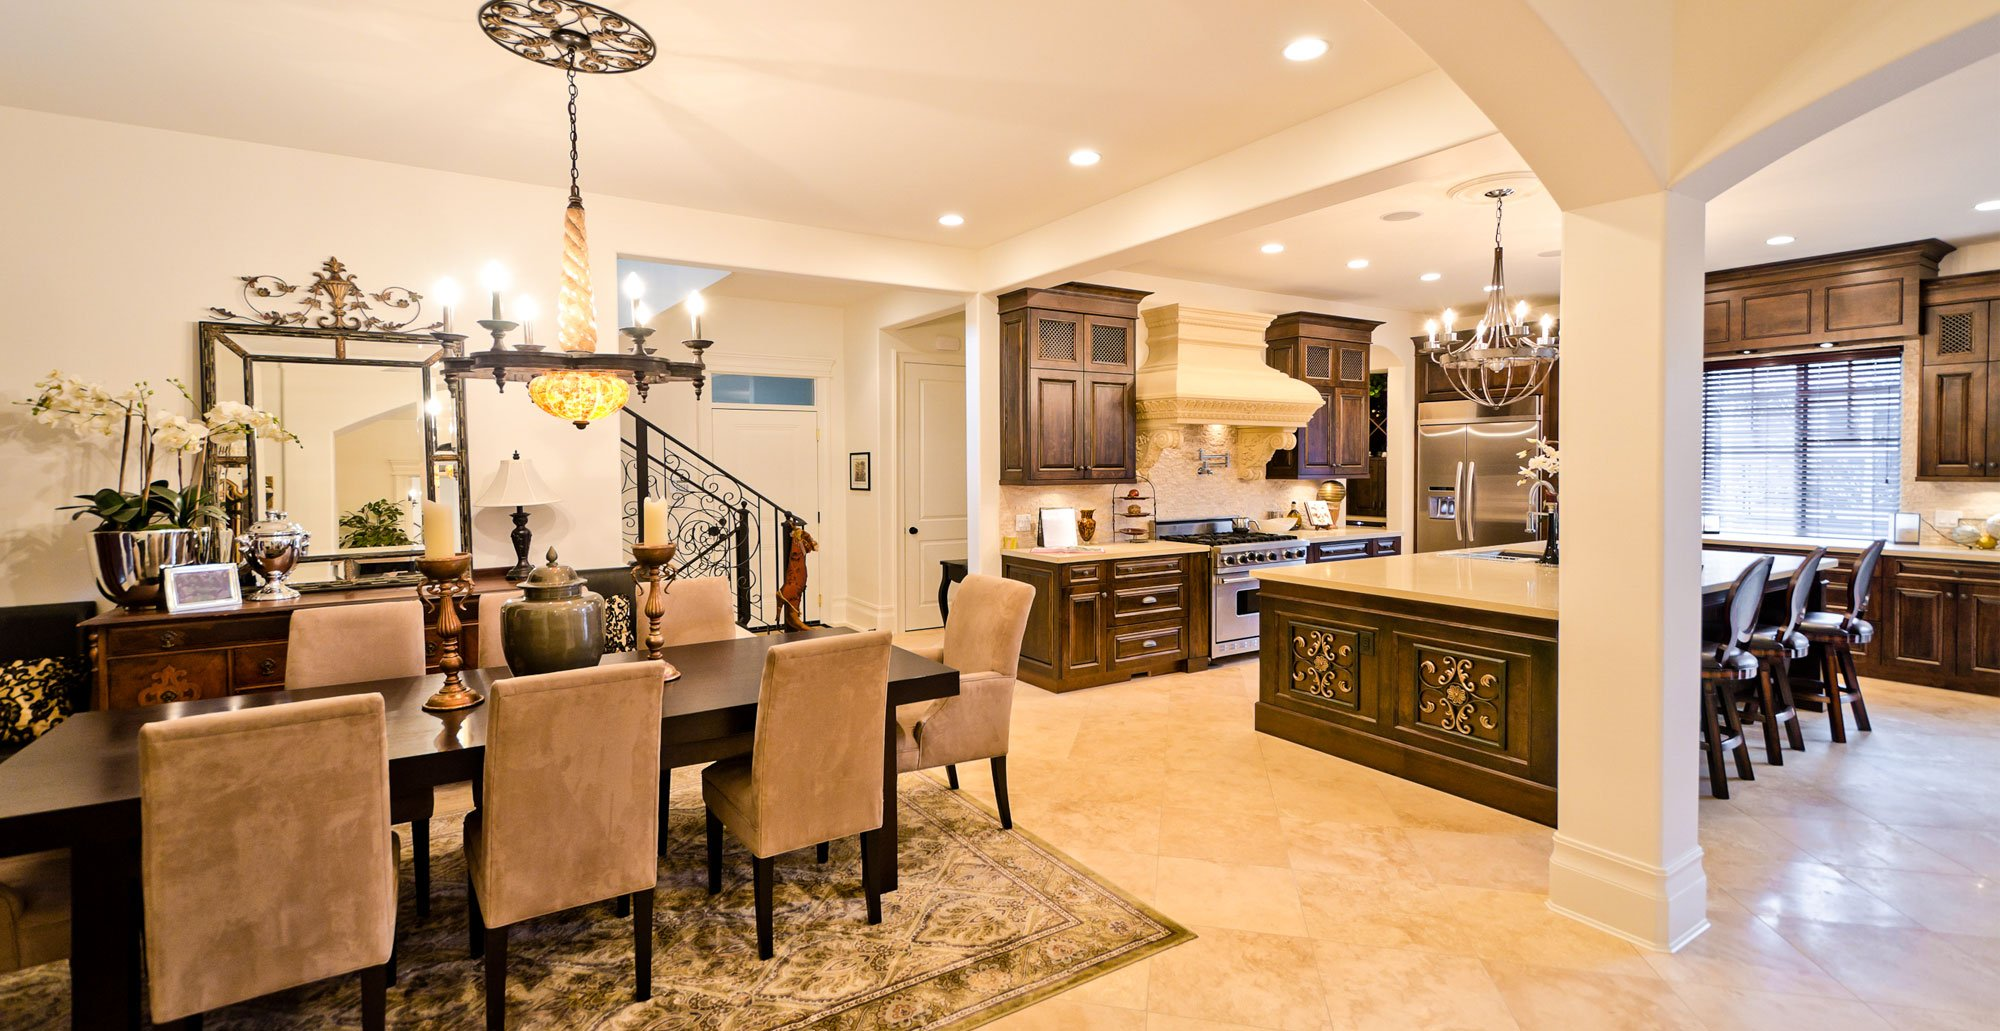 Interior house lighting Interior Decorating 2019 Premier Lighting All Rights Reserved Lowes Home Outdoor Lighting Fixtures In Scottsdale Tucson Premier